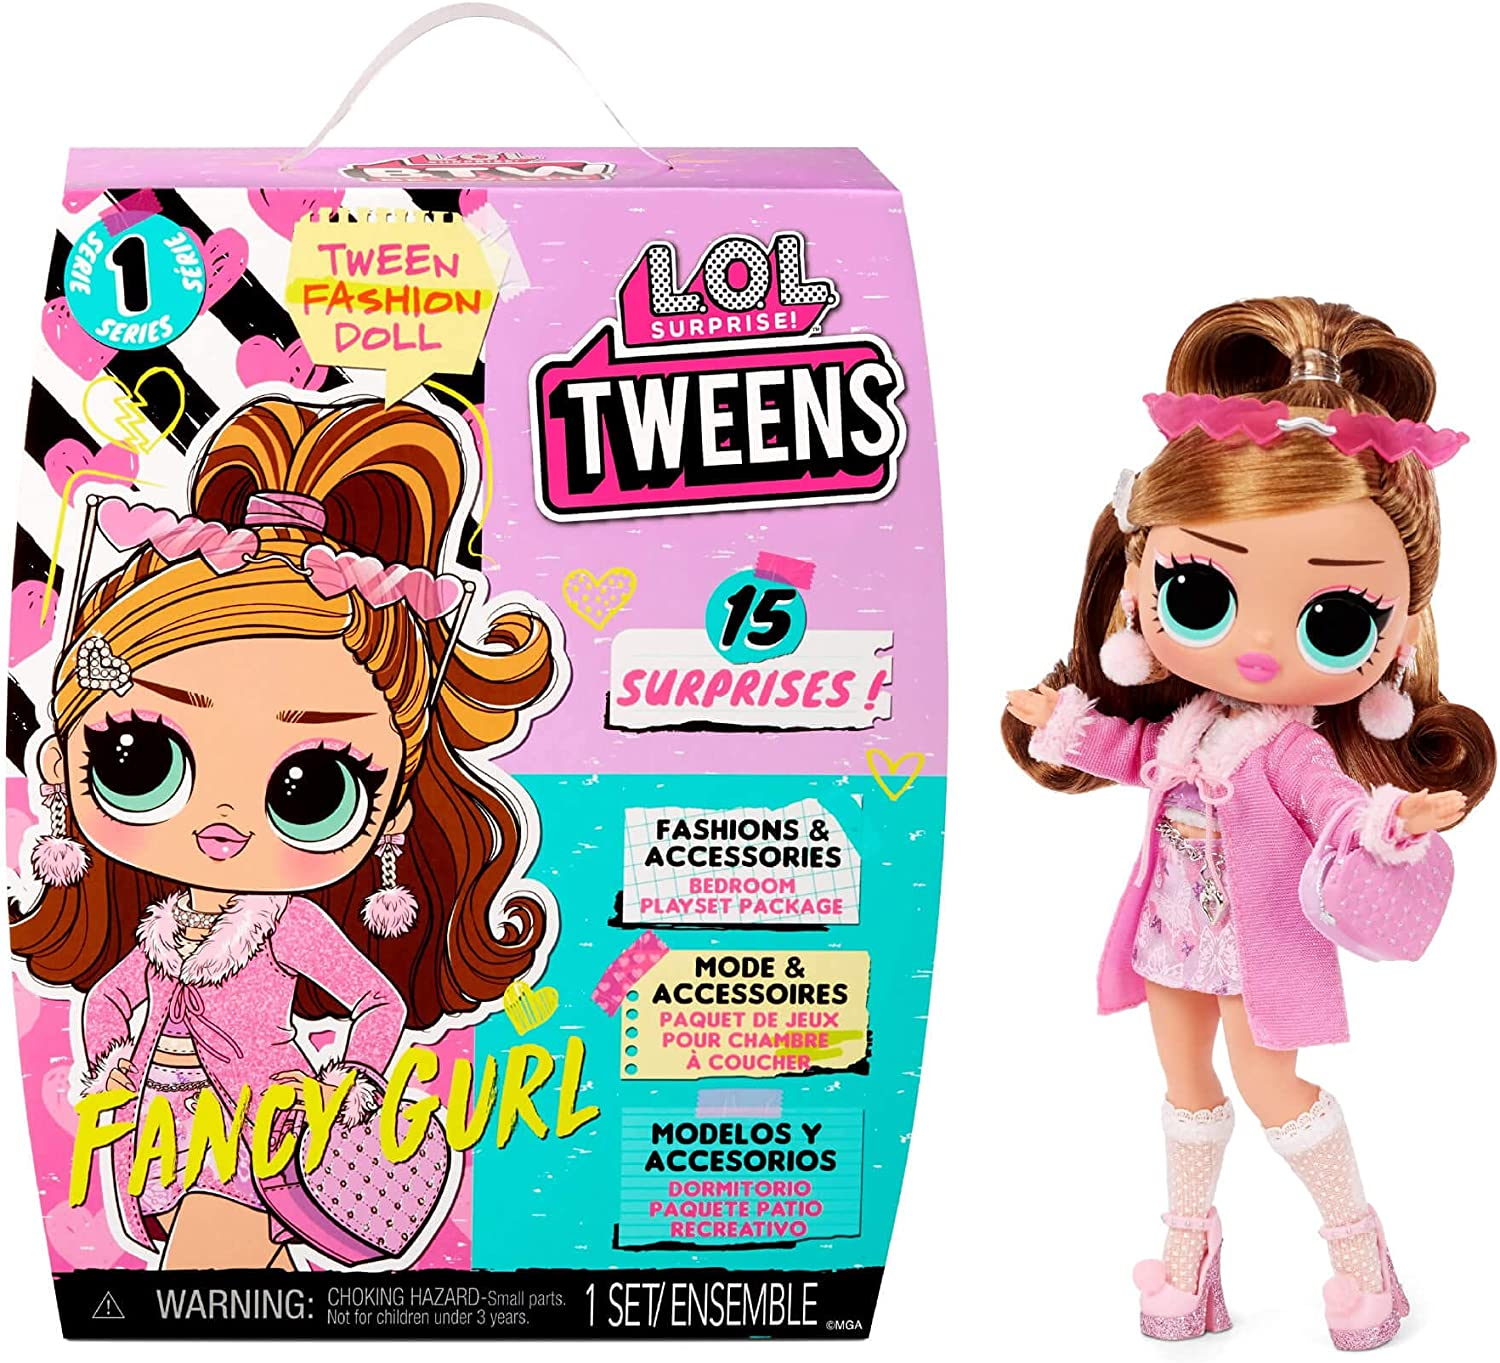 LOL Dedication Surprise Tweens Fashion Doll Fancy 15 Surprises Gurl In a popularity with